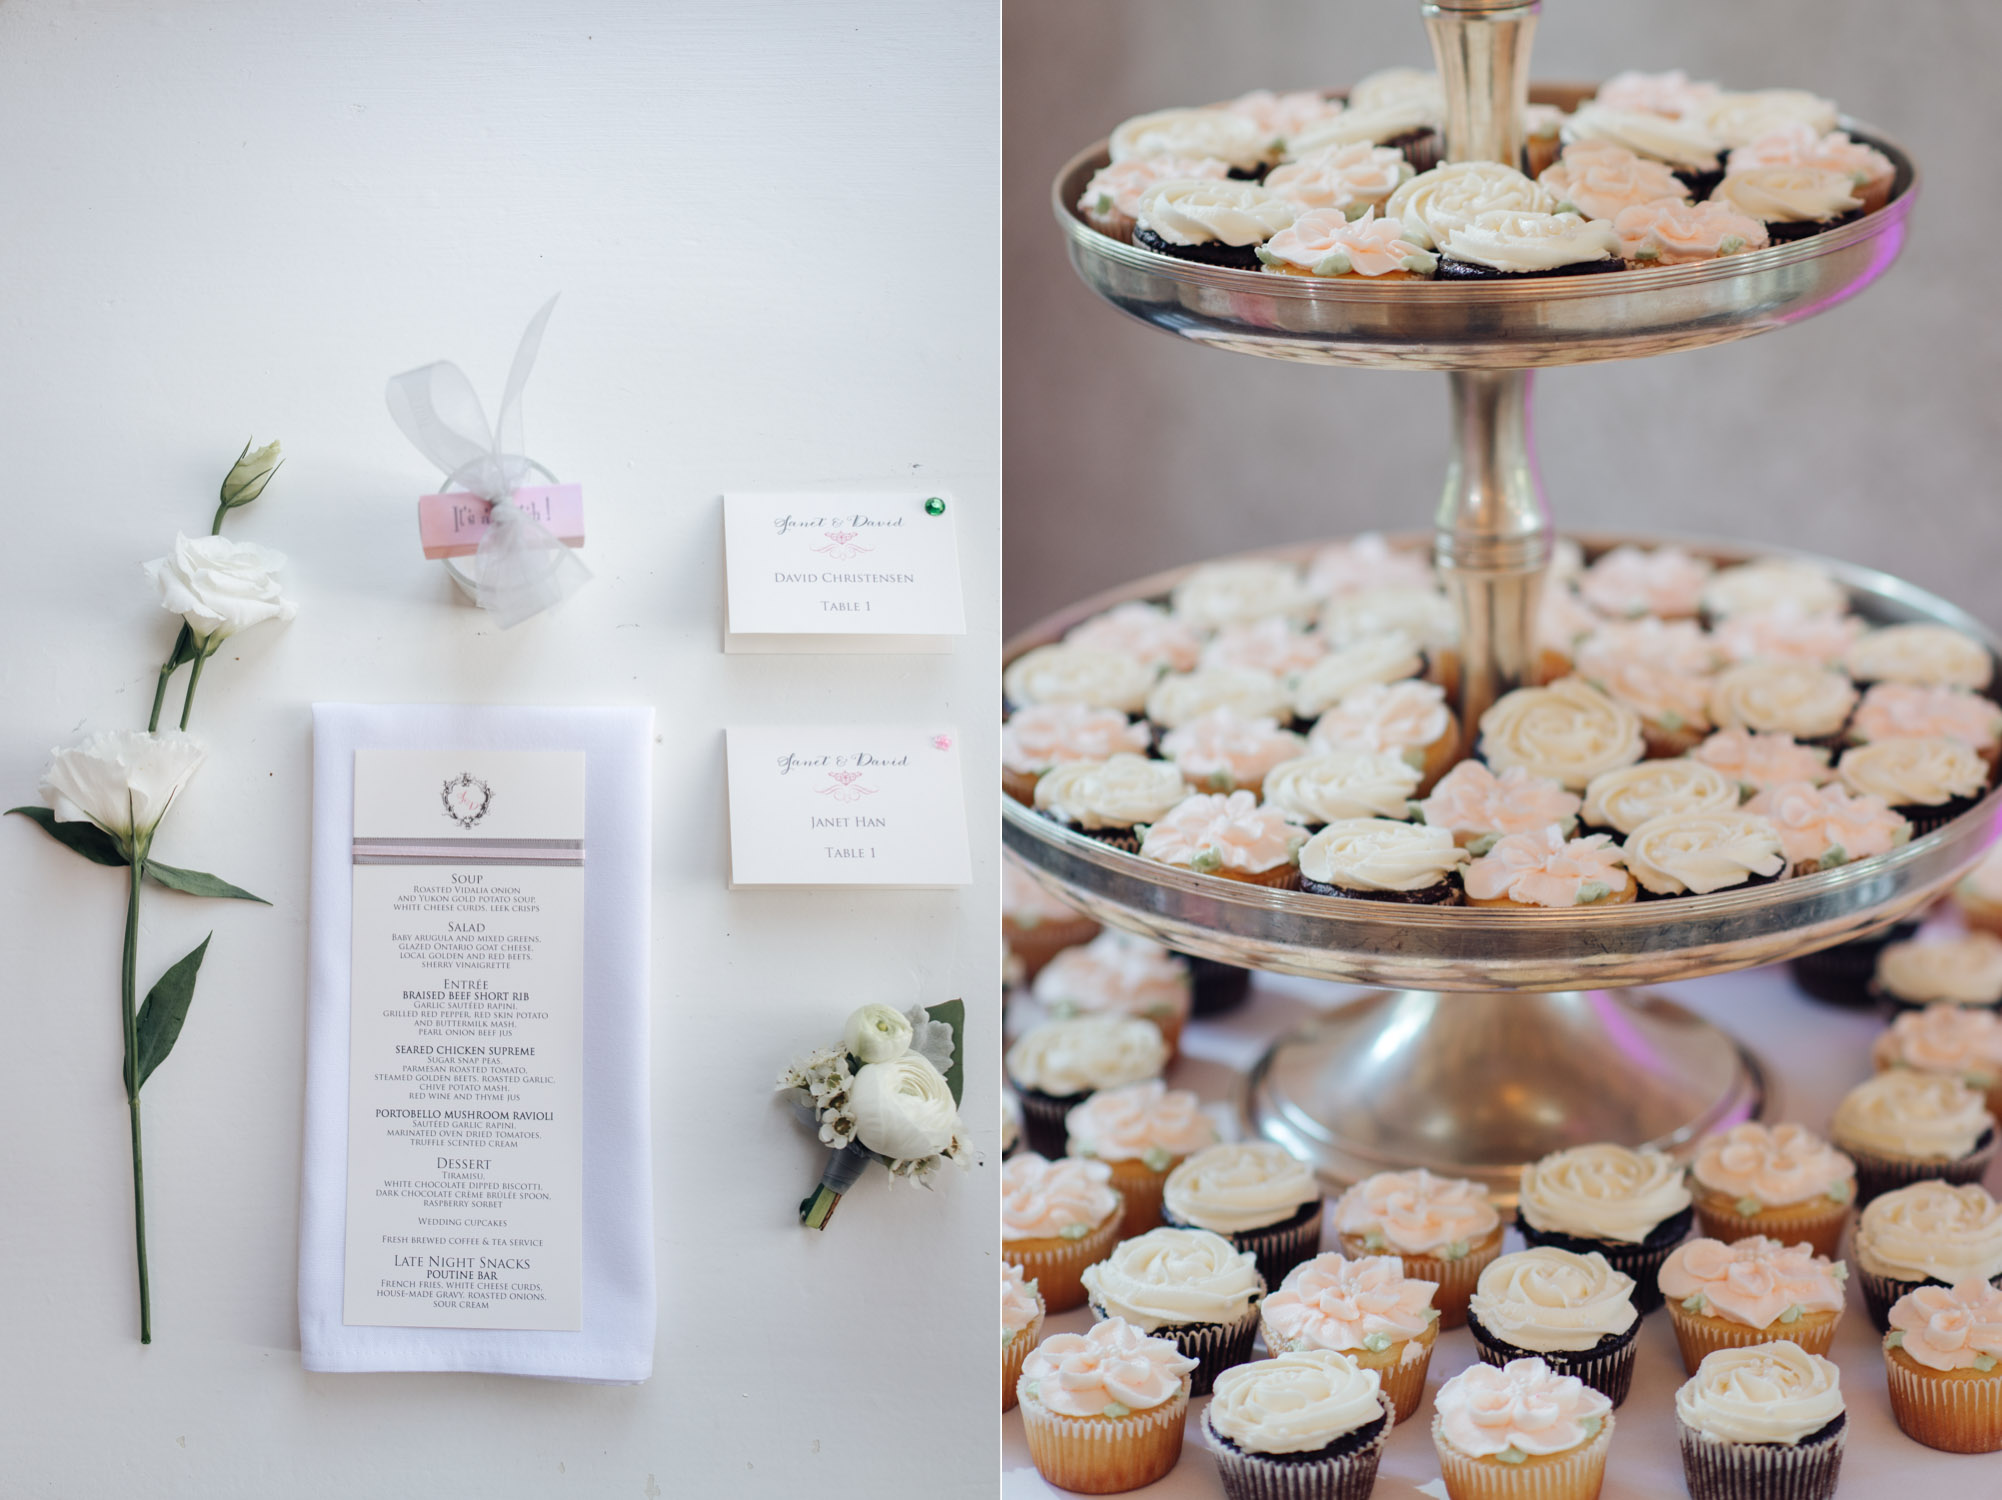 Cupcake and table decor at the Estates of Sunnybrook Wedding Reception